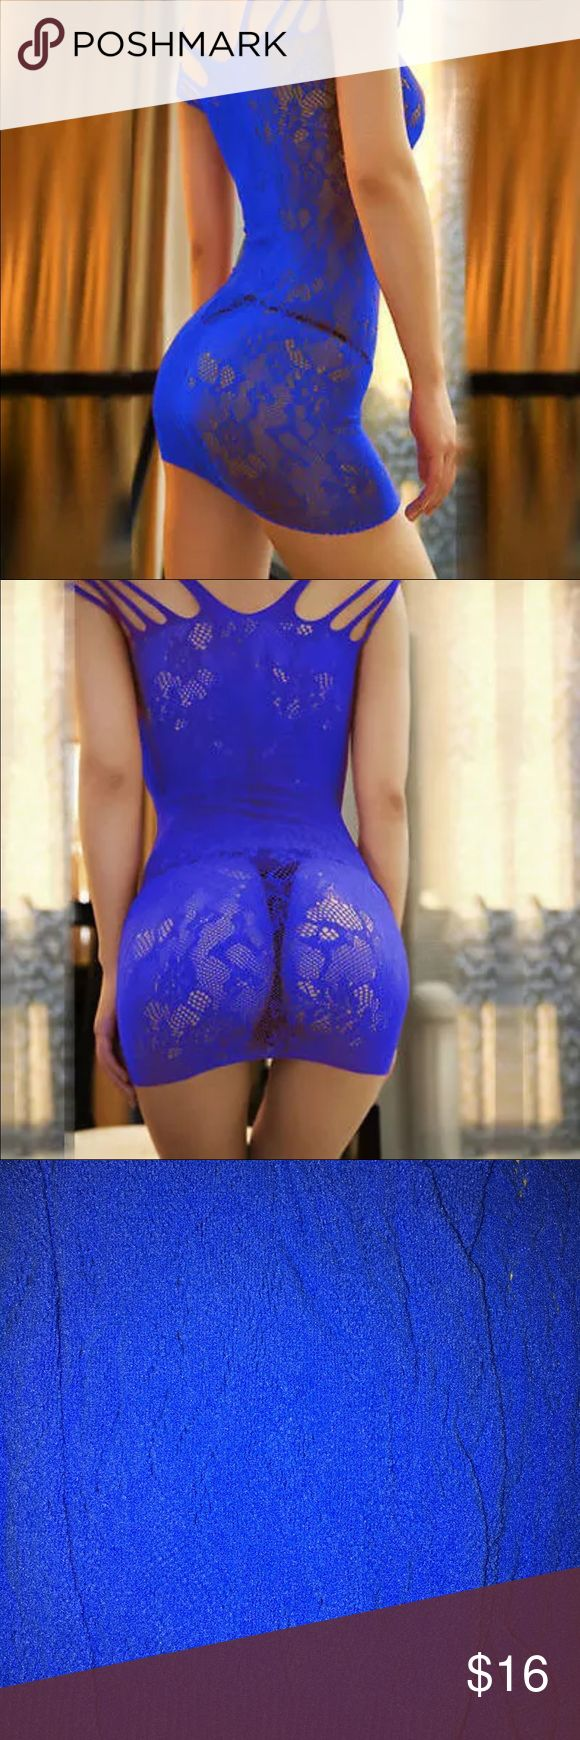 💙 sexy body stocking Sexy fishnet body stocking          ✔️top rated seller         ✔️fast shipper         ❌trades         ✔️offers  🔵ask all ??'s prior to purchase, I will not cancel Intimates & Sleepwear Pajamas